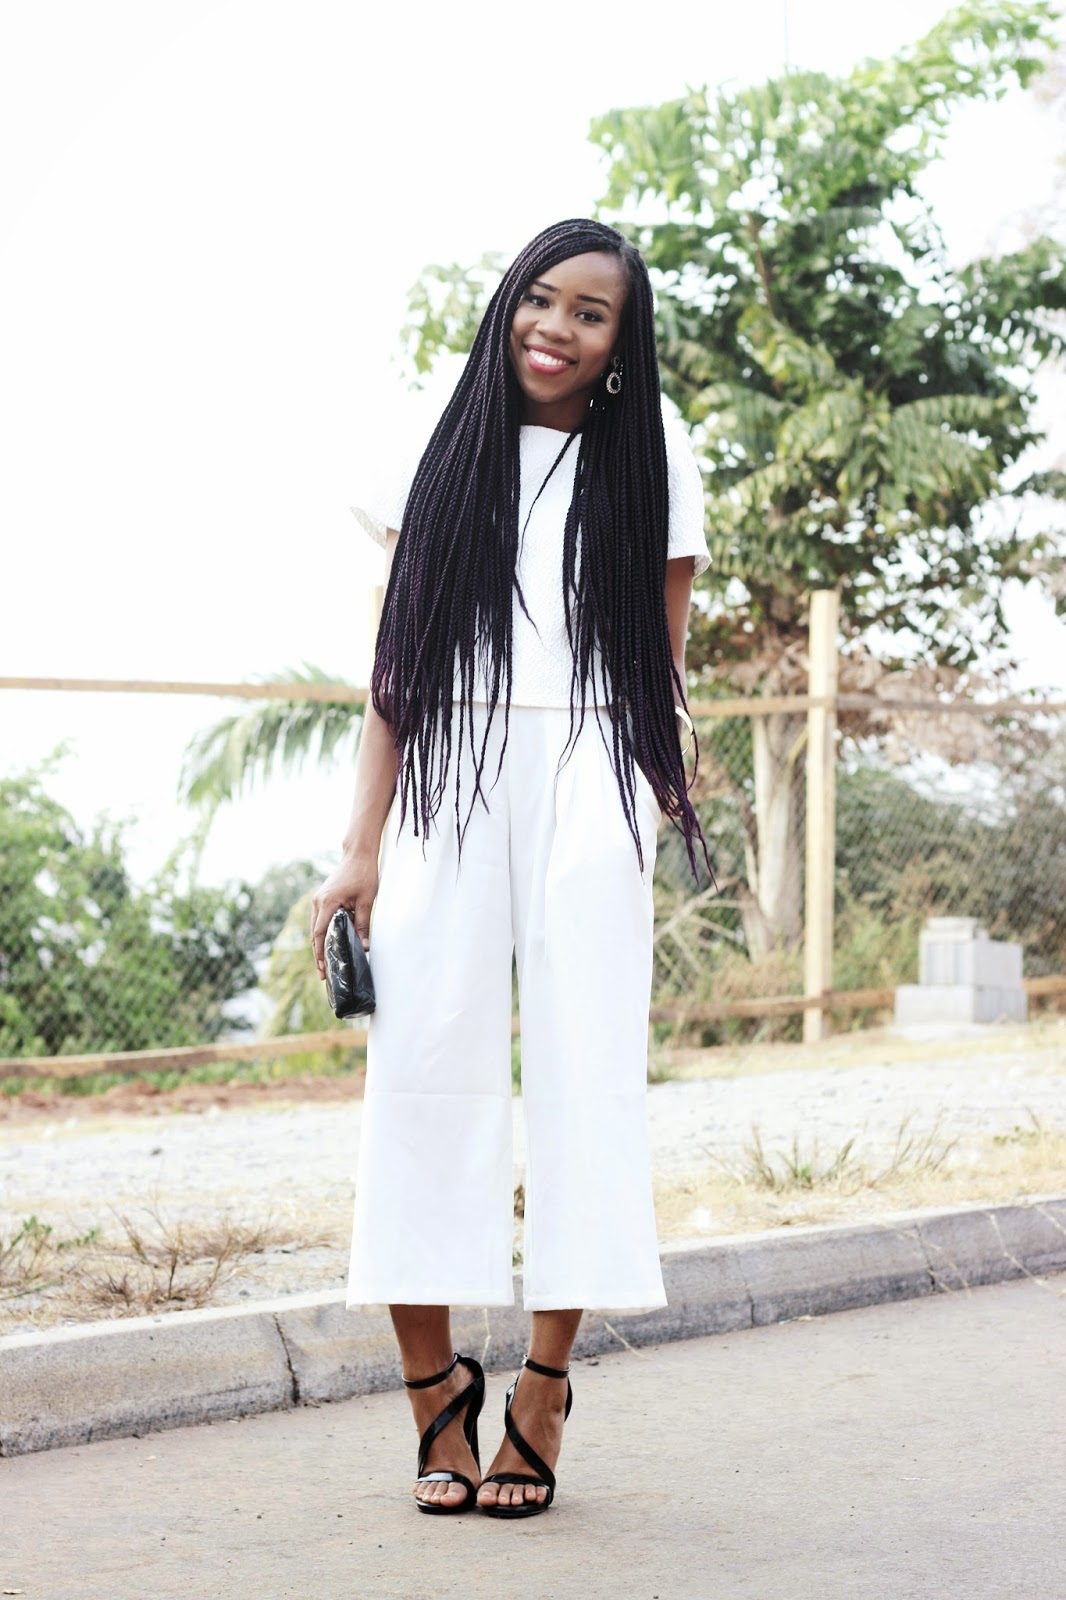 Fashion diva of the week grace fashionandstylepolice fashionandstylepolice - Diva style fashion ...